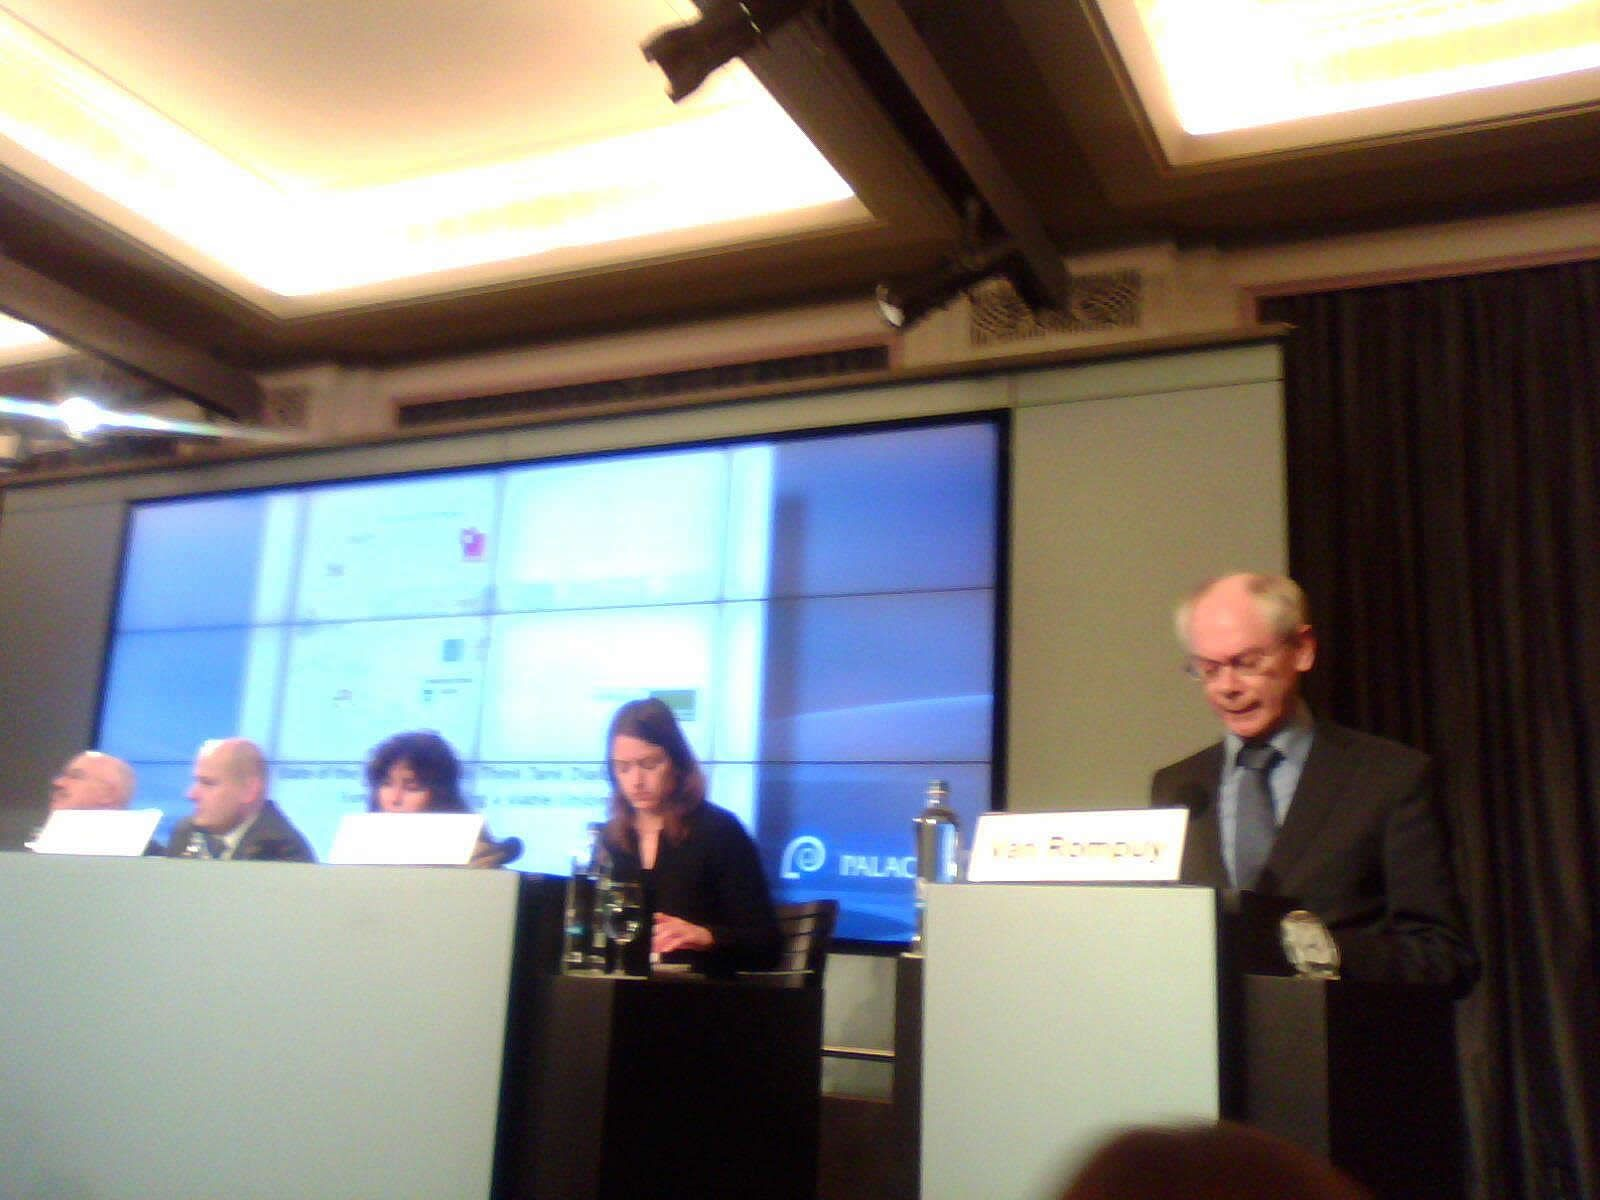 Building a viable Union. Herman Van Rompuy: Directio comes before speed